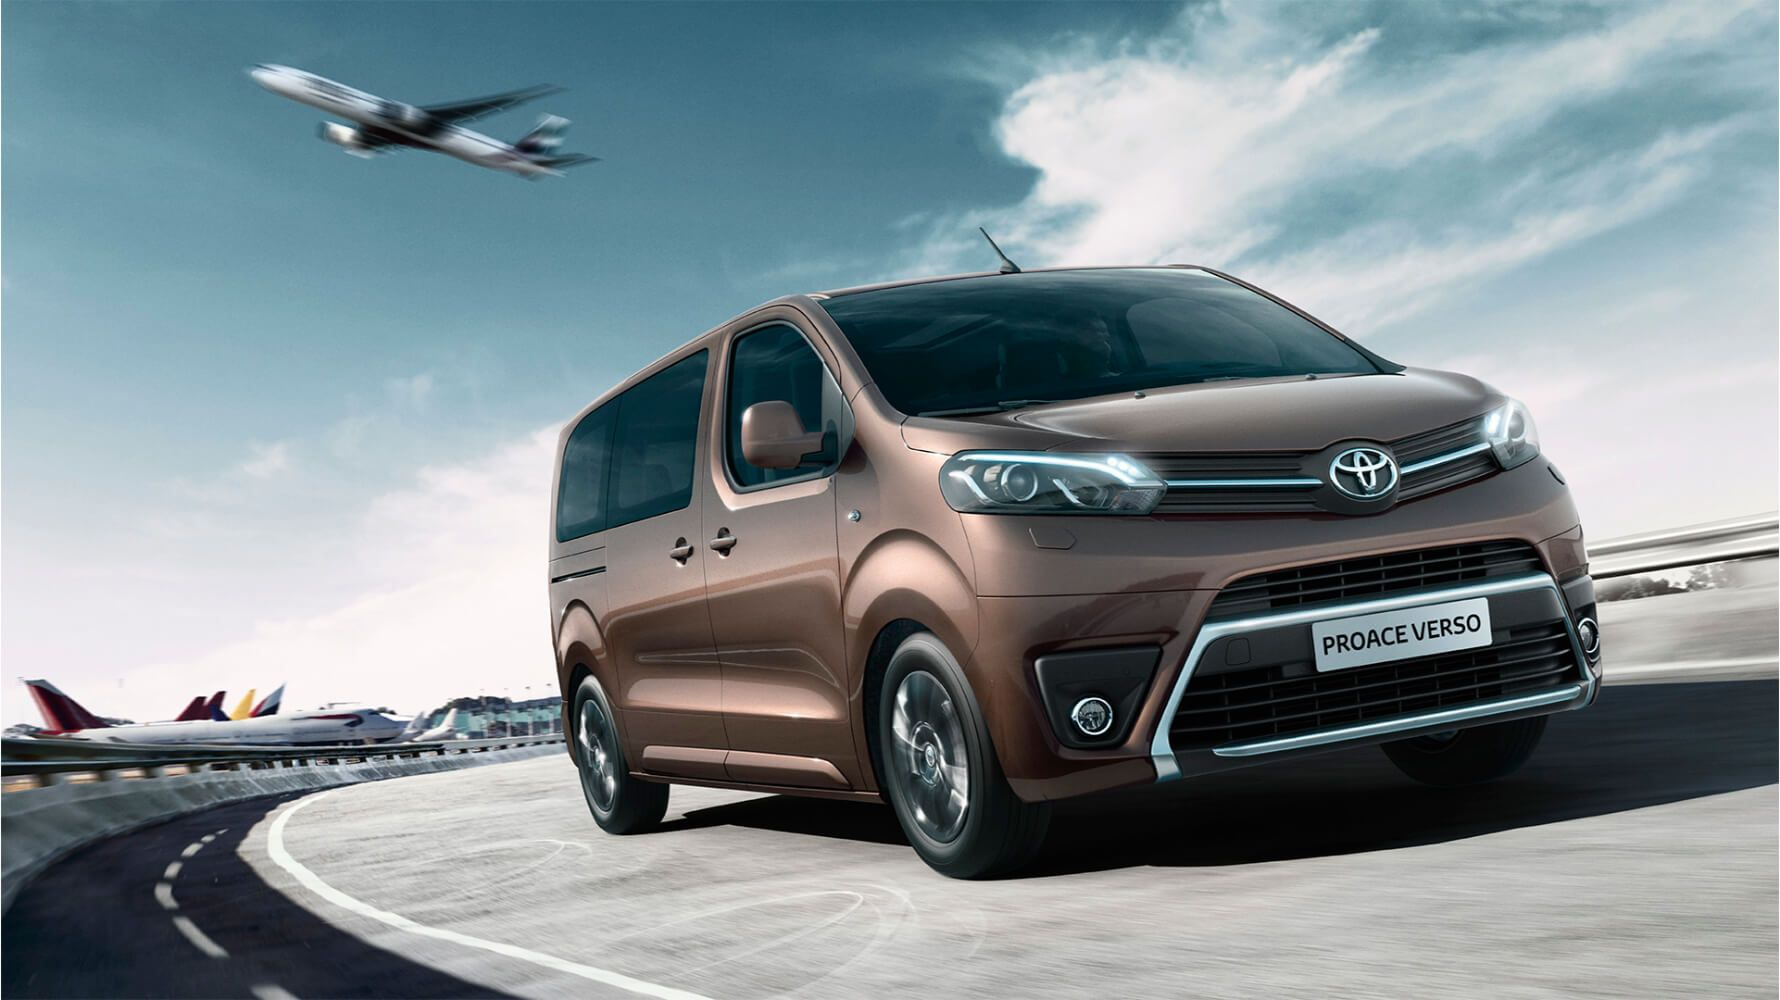 toyota_proace_verso_2019_gallery_001_full_tcm_3046_1703757